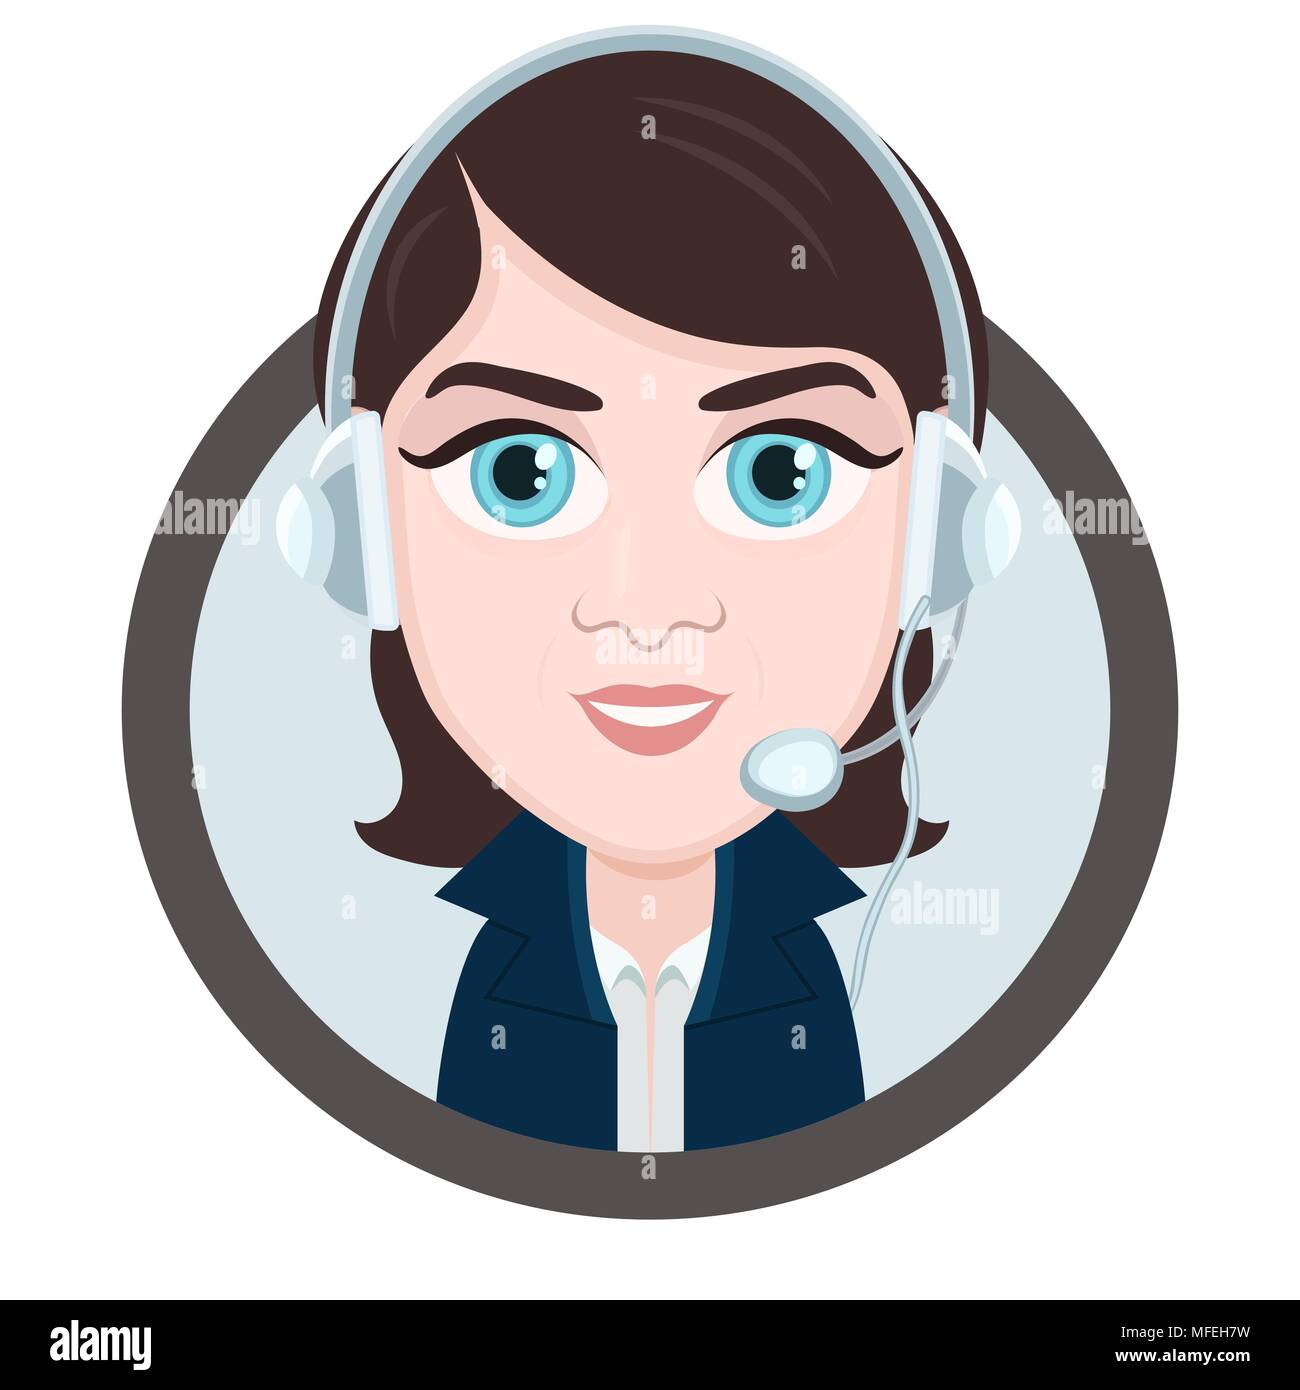 Cartoon character vector drawing portrait girl call center operator icon sticker woman brunette with big eyes with a headset headphones and micro